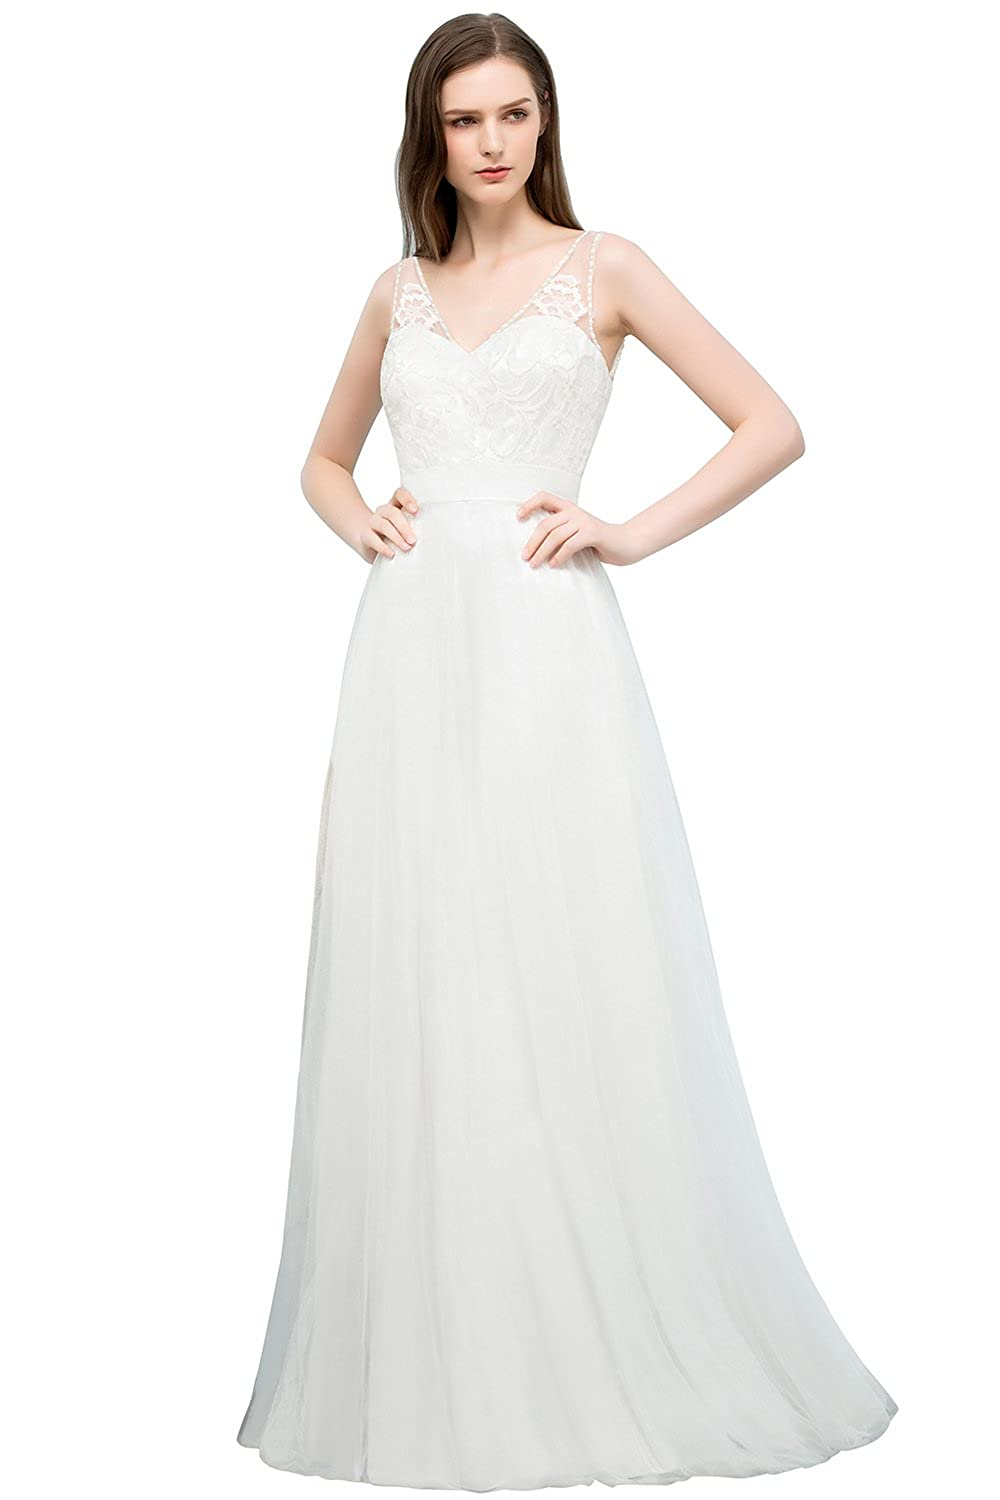 Women 2018 Informal Wedding Dress For Bride Guest Simple Gown At